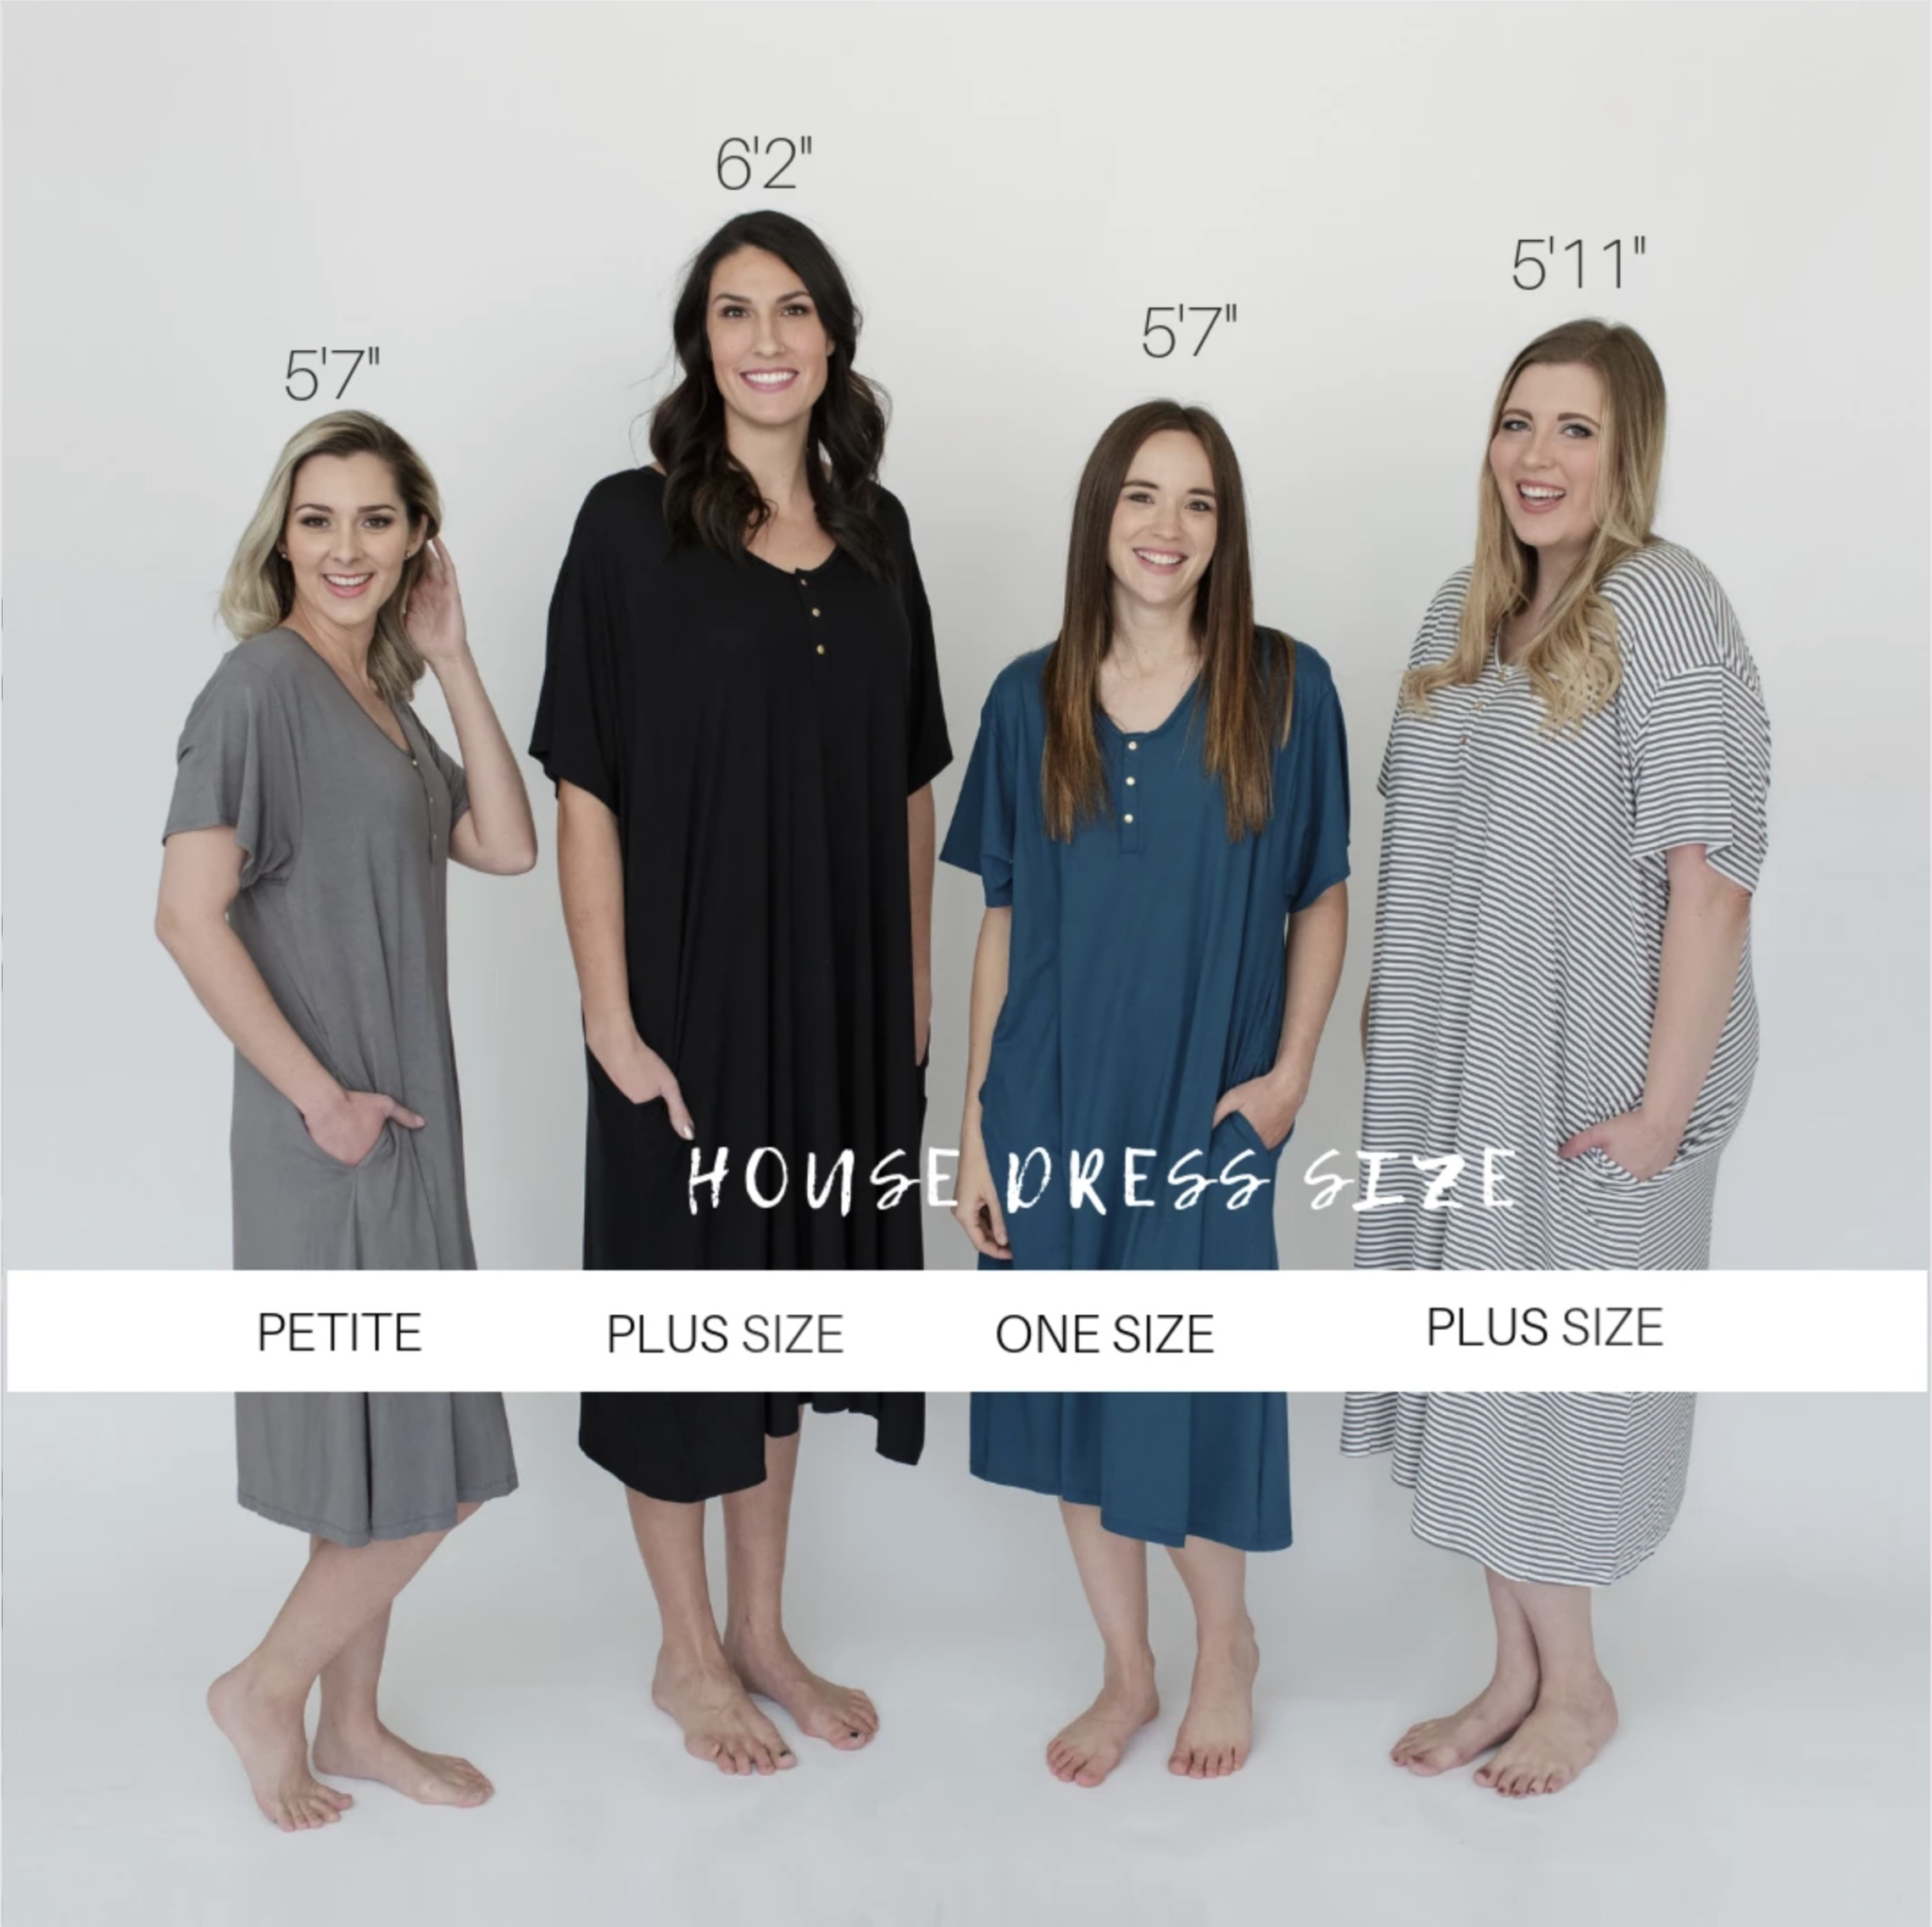 four women wearing different sizes of the undercover mama house dress